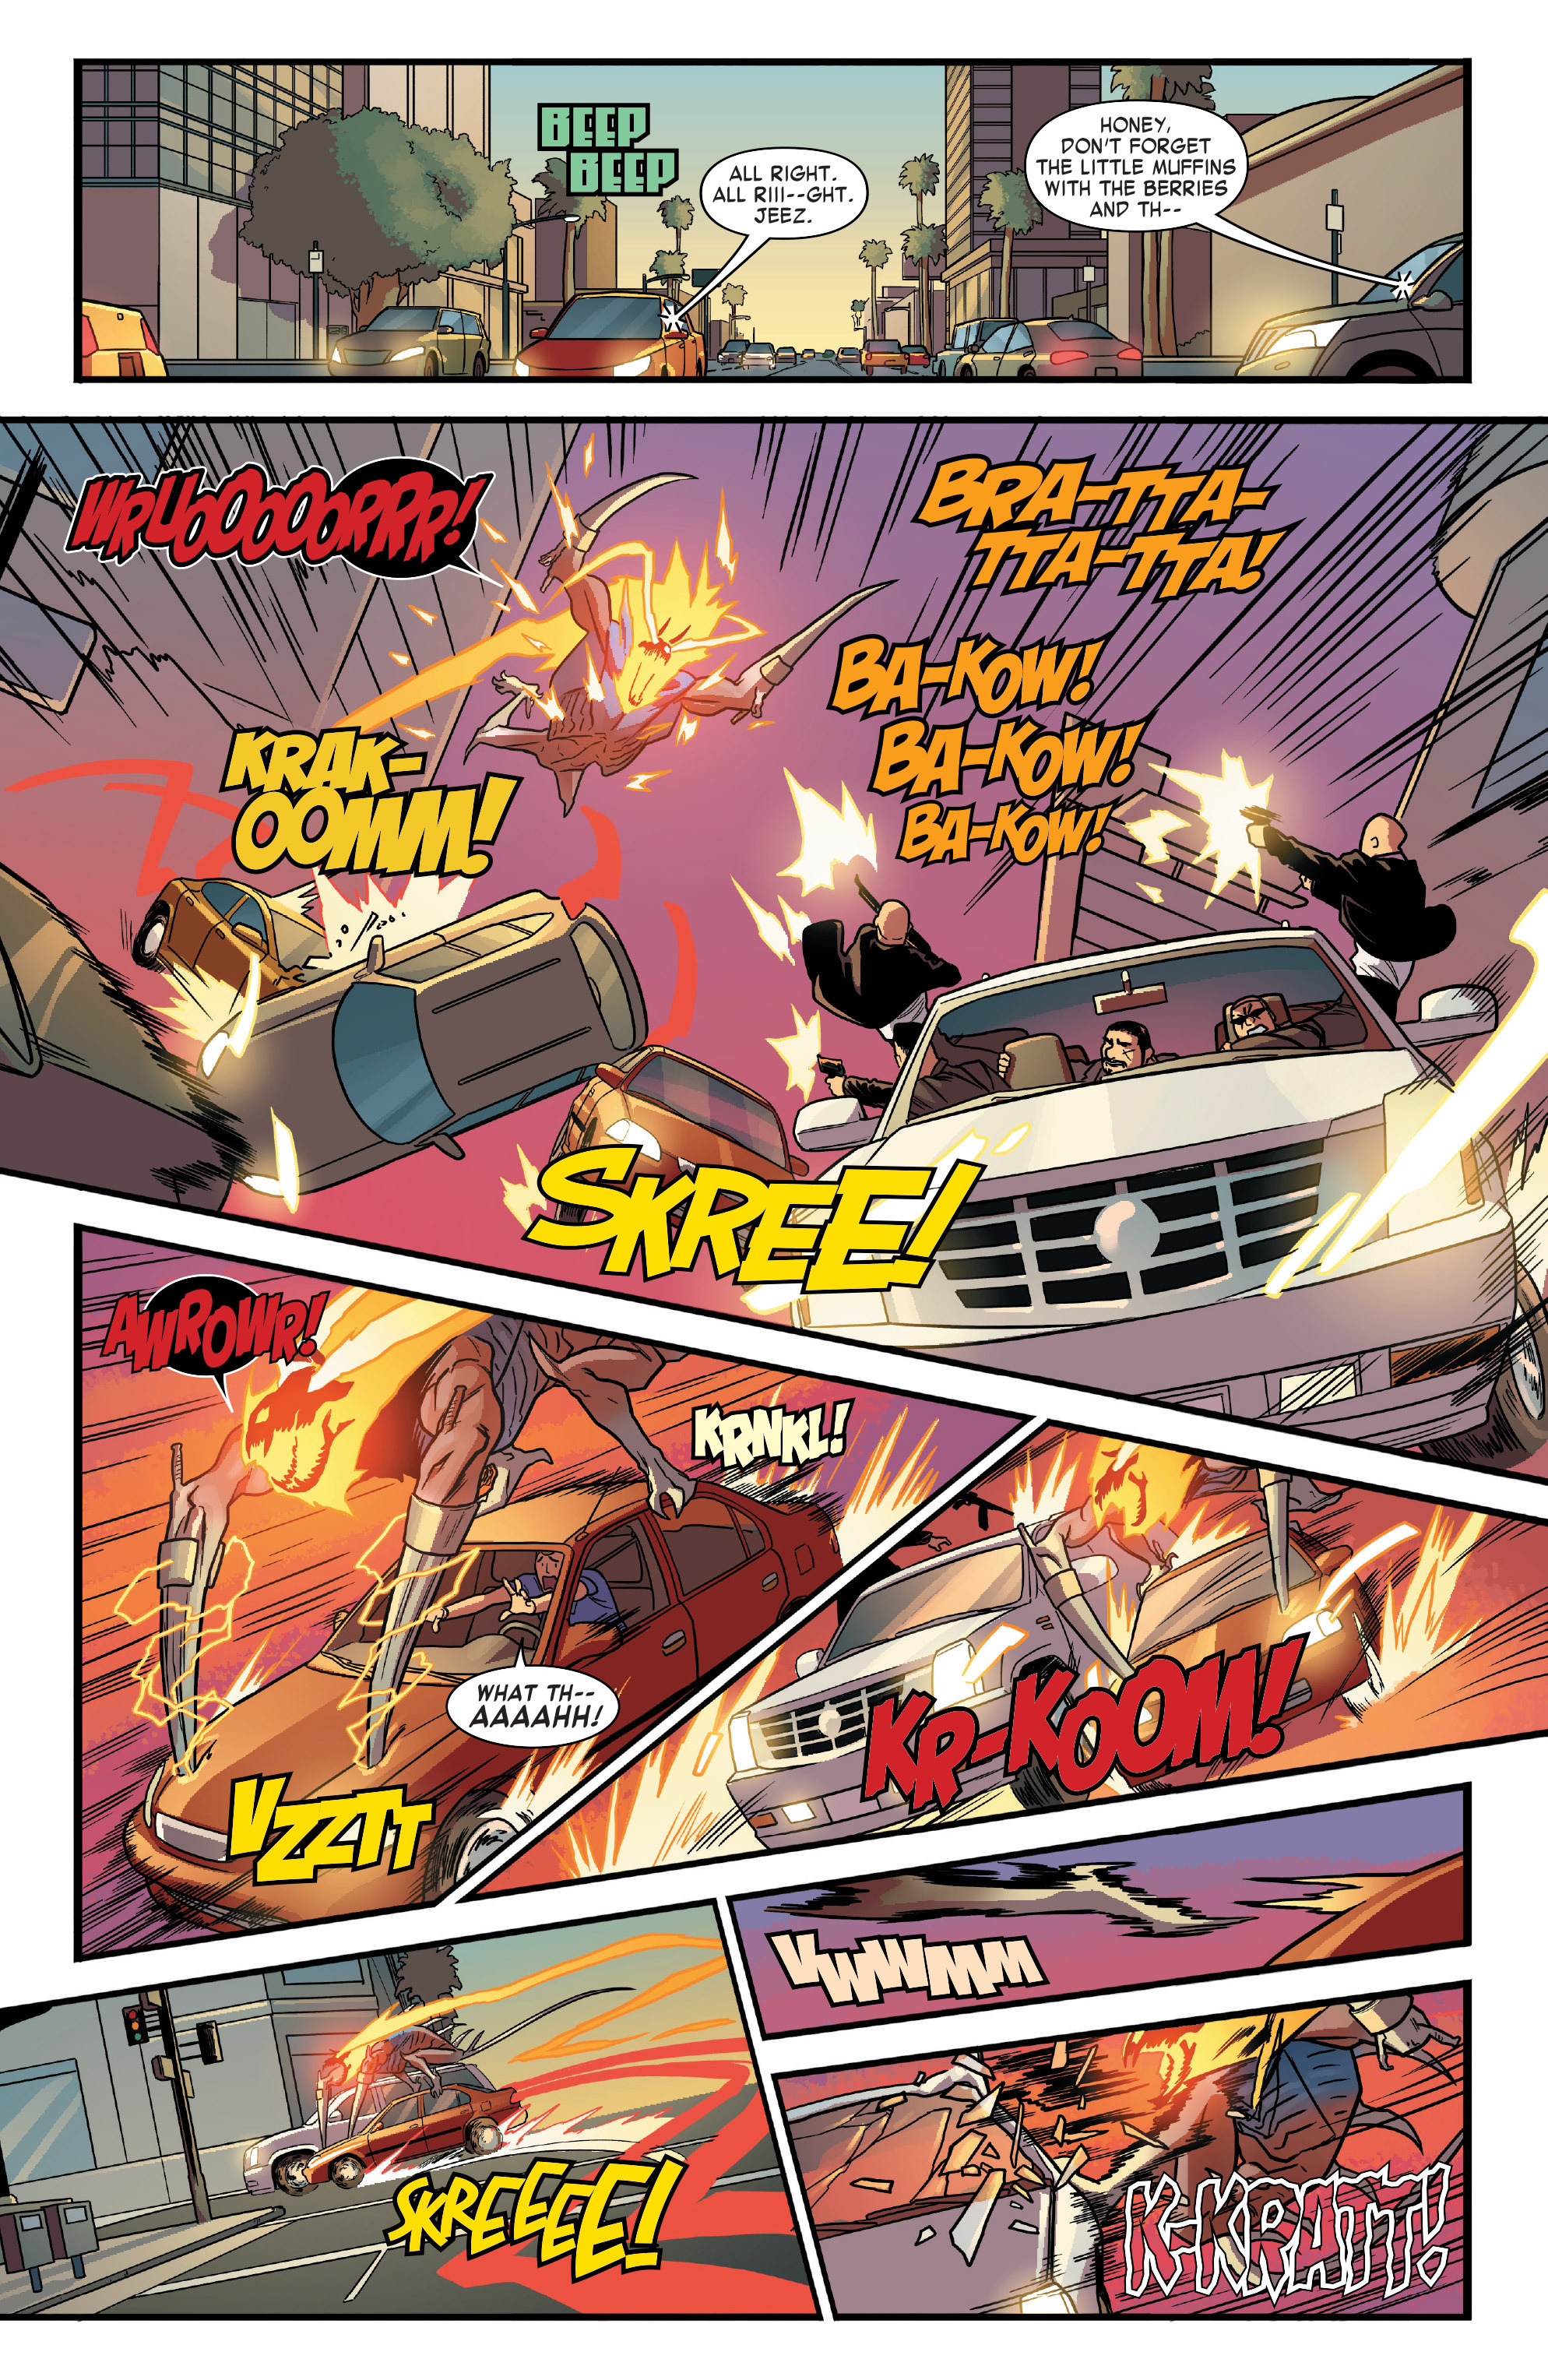 Read online All-New Ghost Rider comic -  Issue #12 - 14